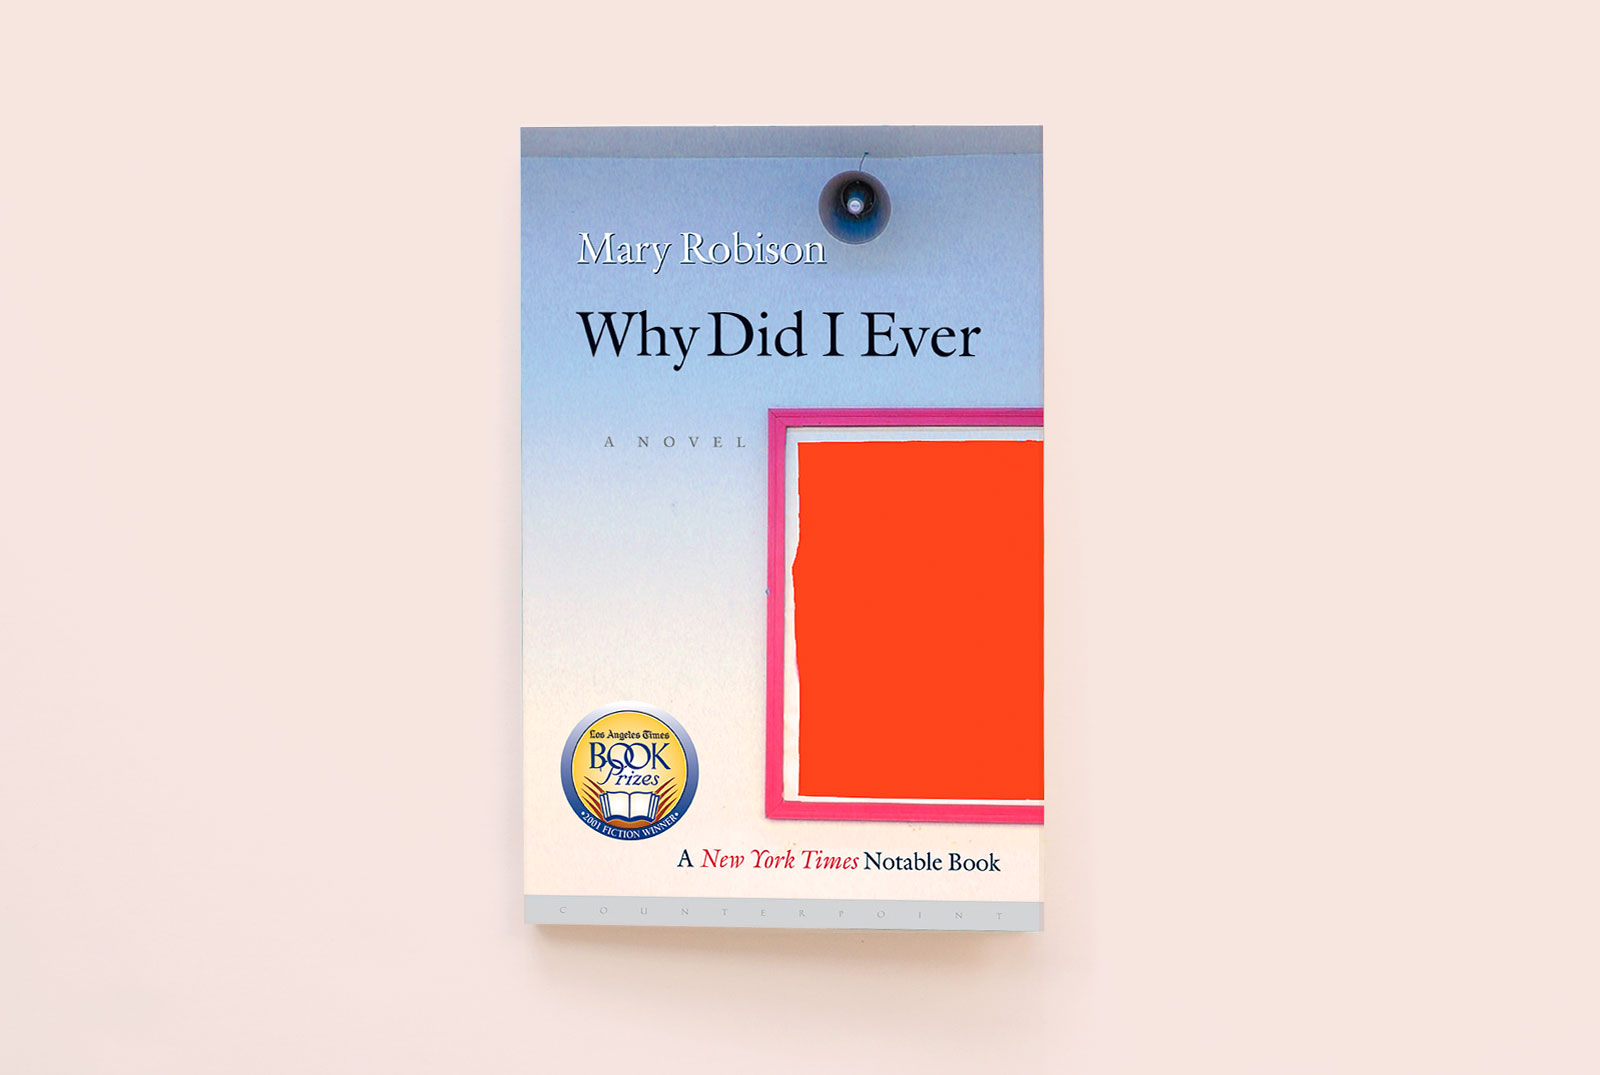 THIS IS MY LIFE: MARY ROBISON'S WHY DID I EVER